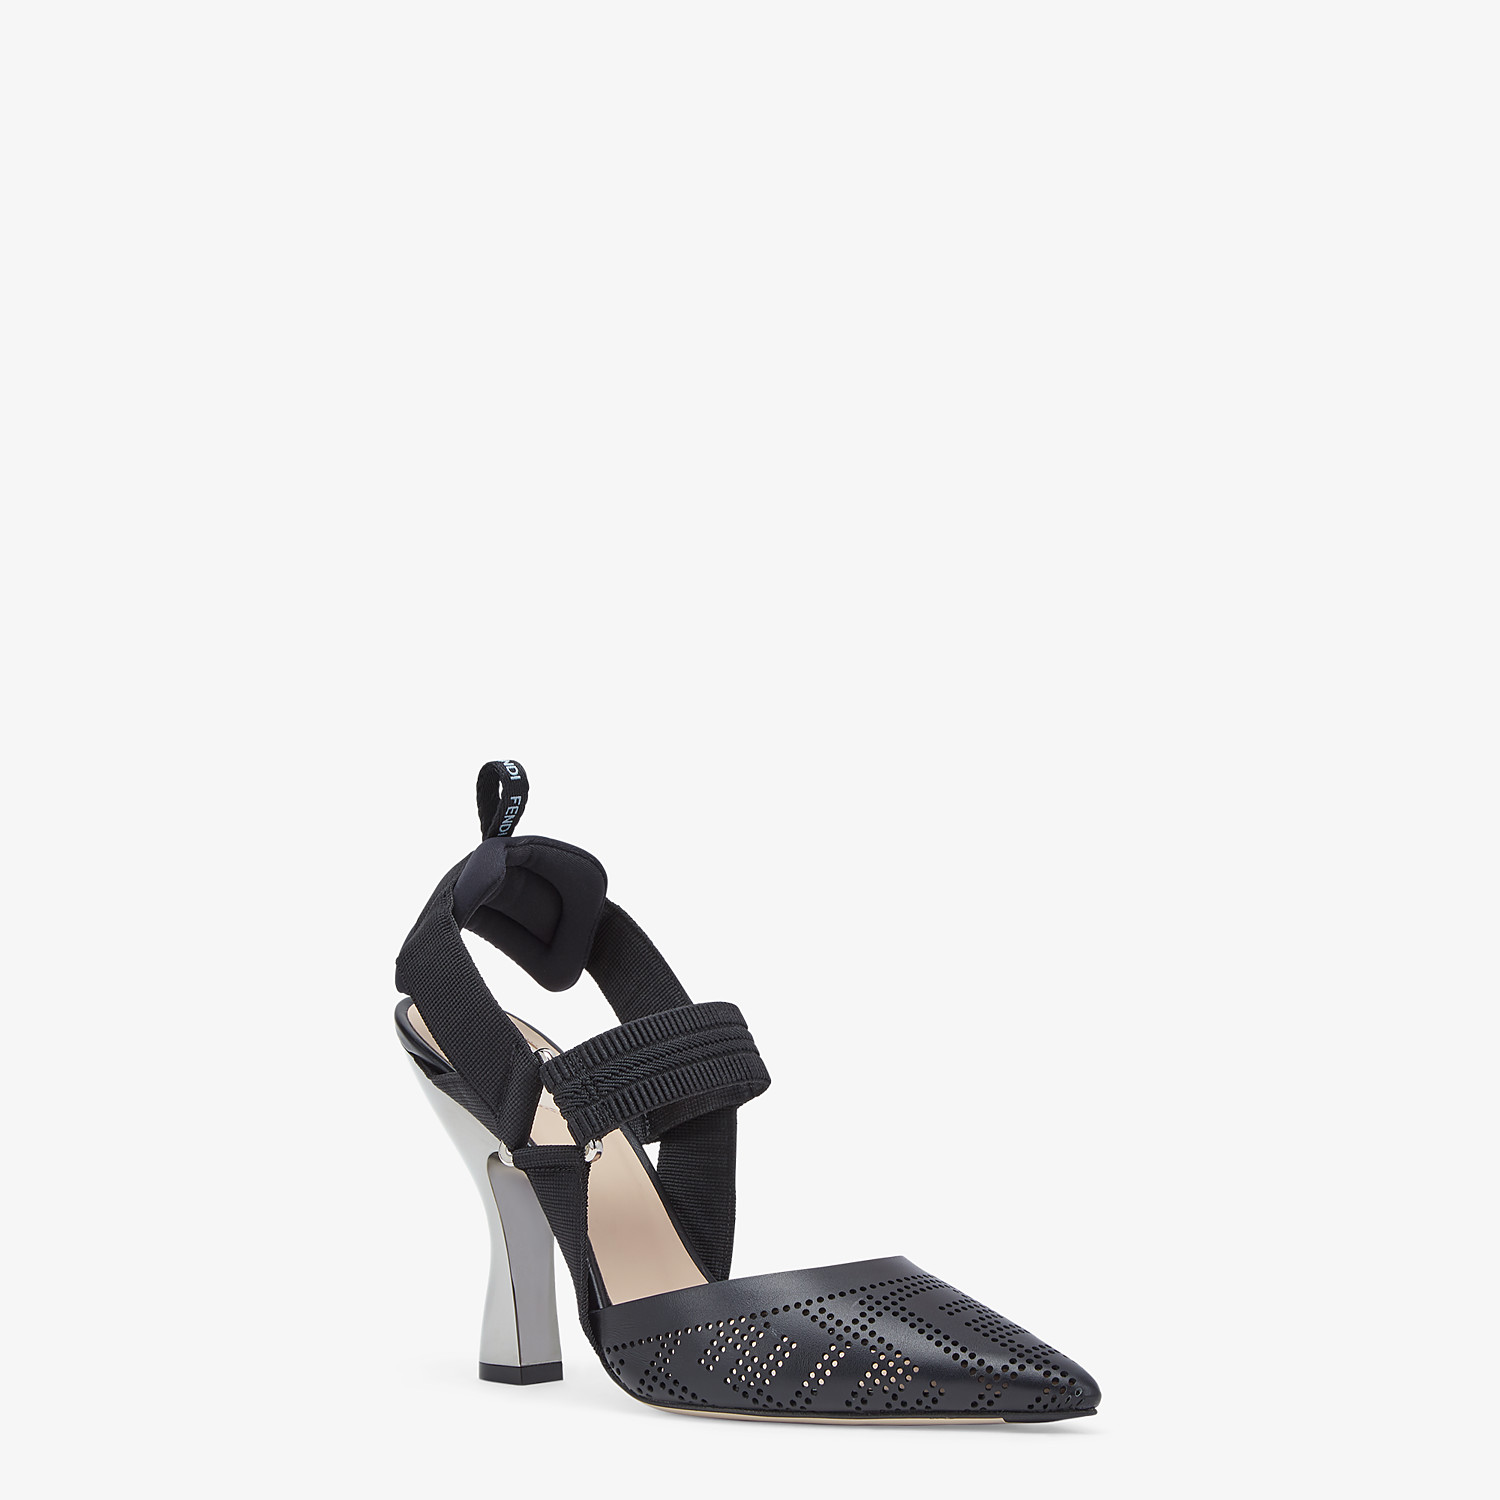 FENDI SLINGBACKS - Black leather Colibrì slingbacks - view 2 detail